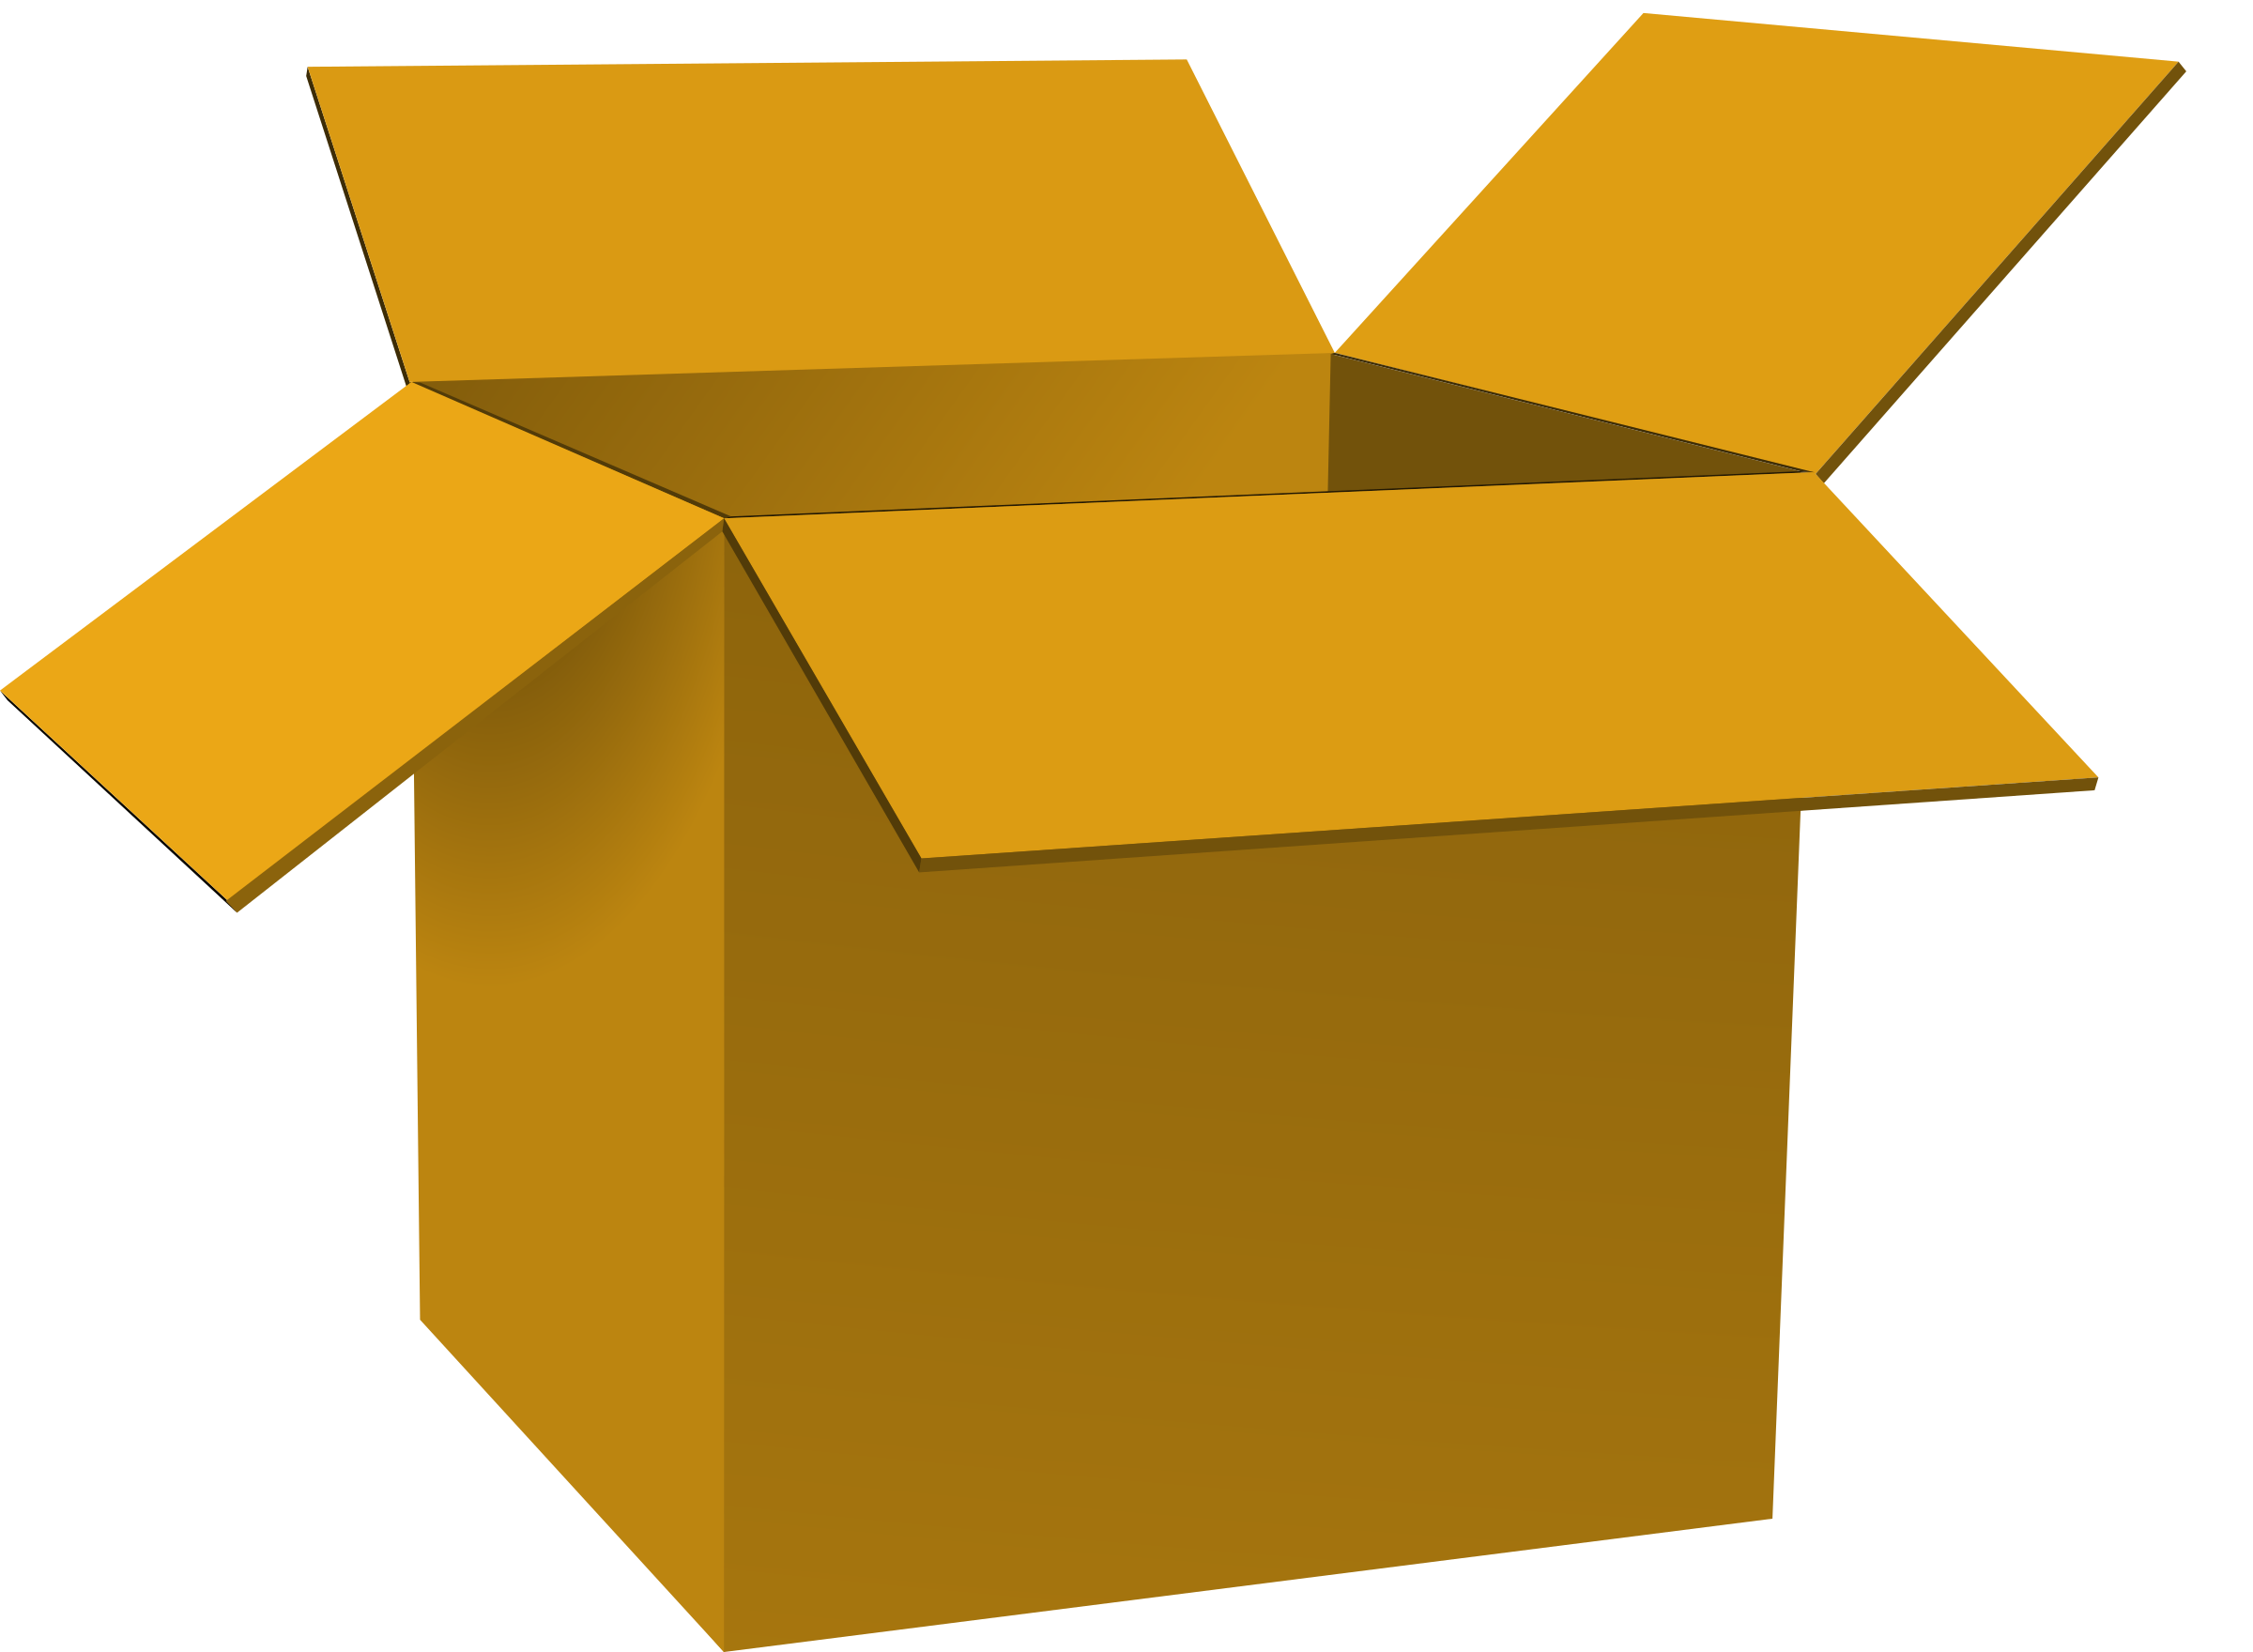 Box clipart #6, Download drawings